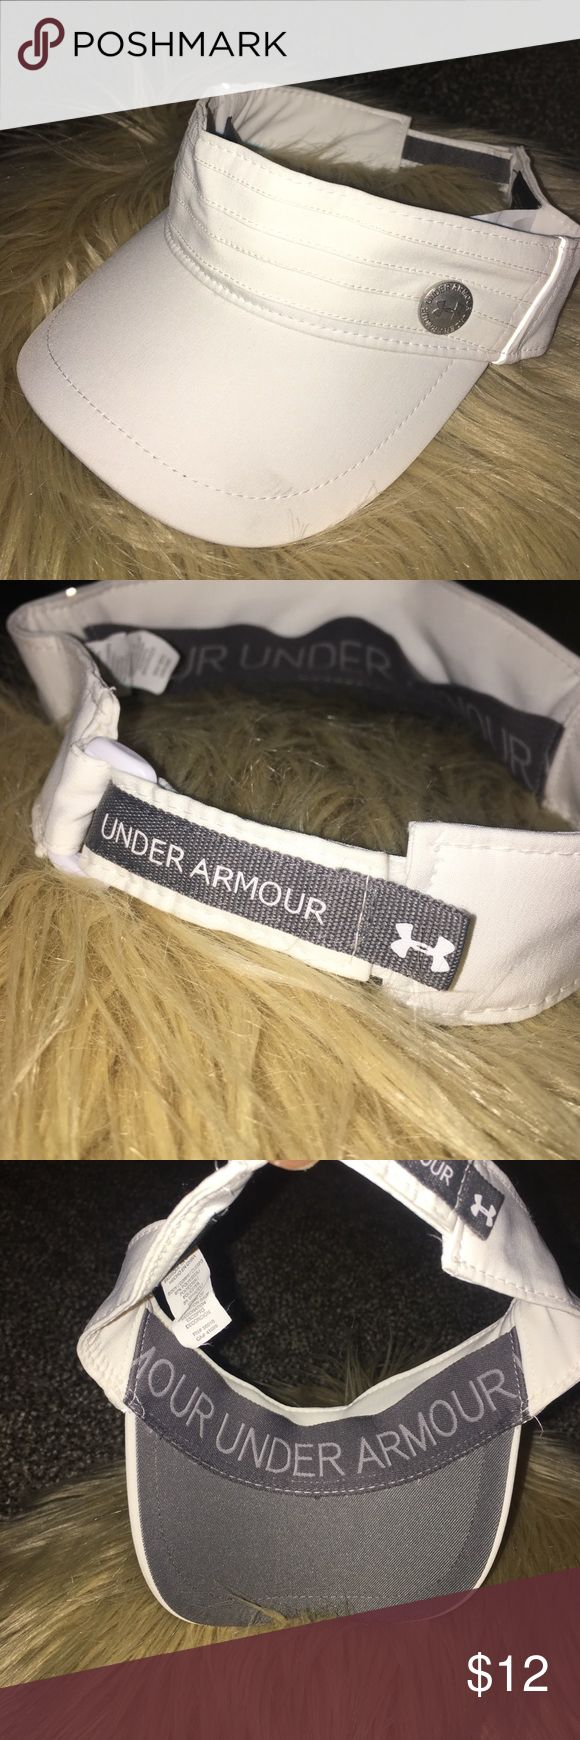 Under Armour women's visor hat one size Great condition Under Armour Accessories Hats